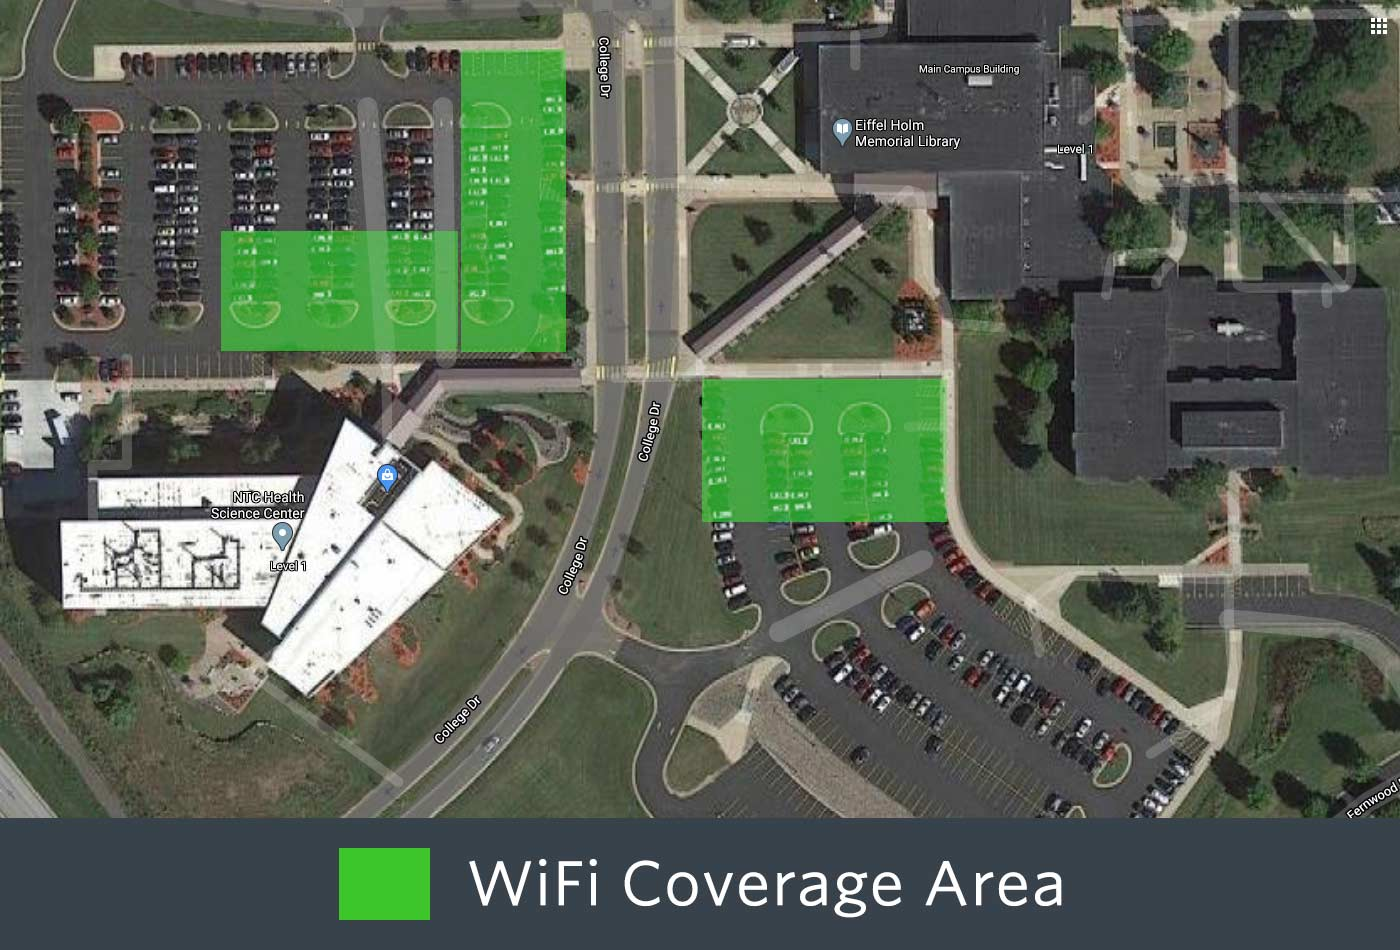 Outdoor WiFi coverage of the front of the Wausau Campus